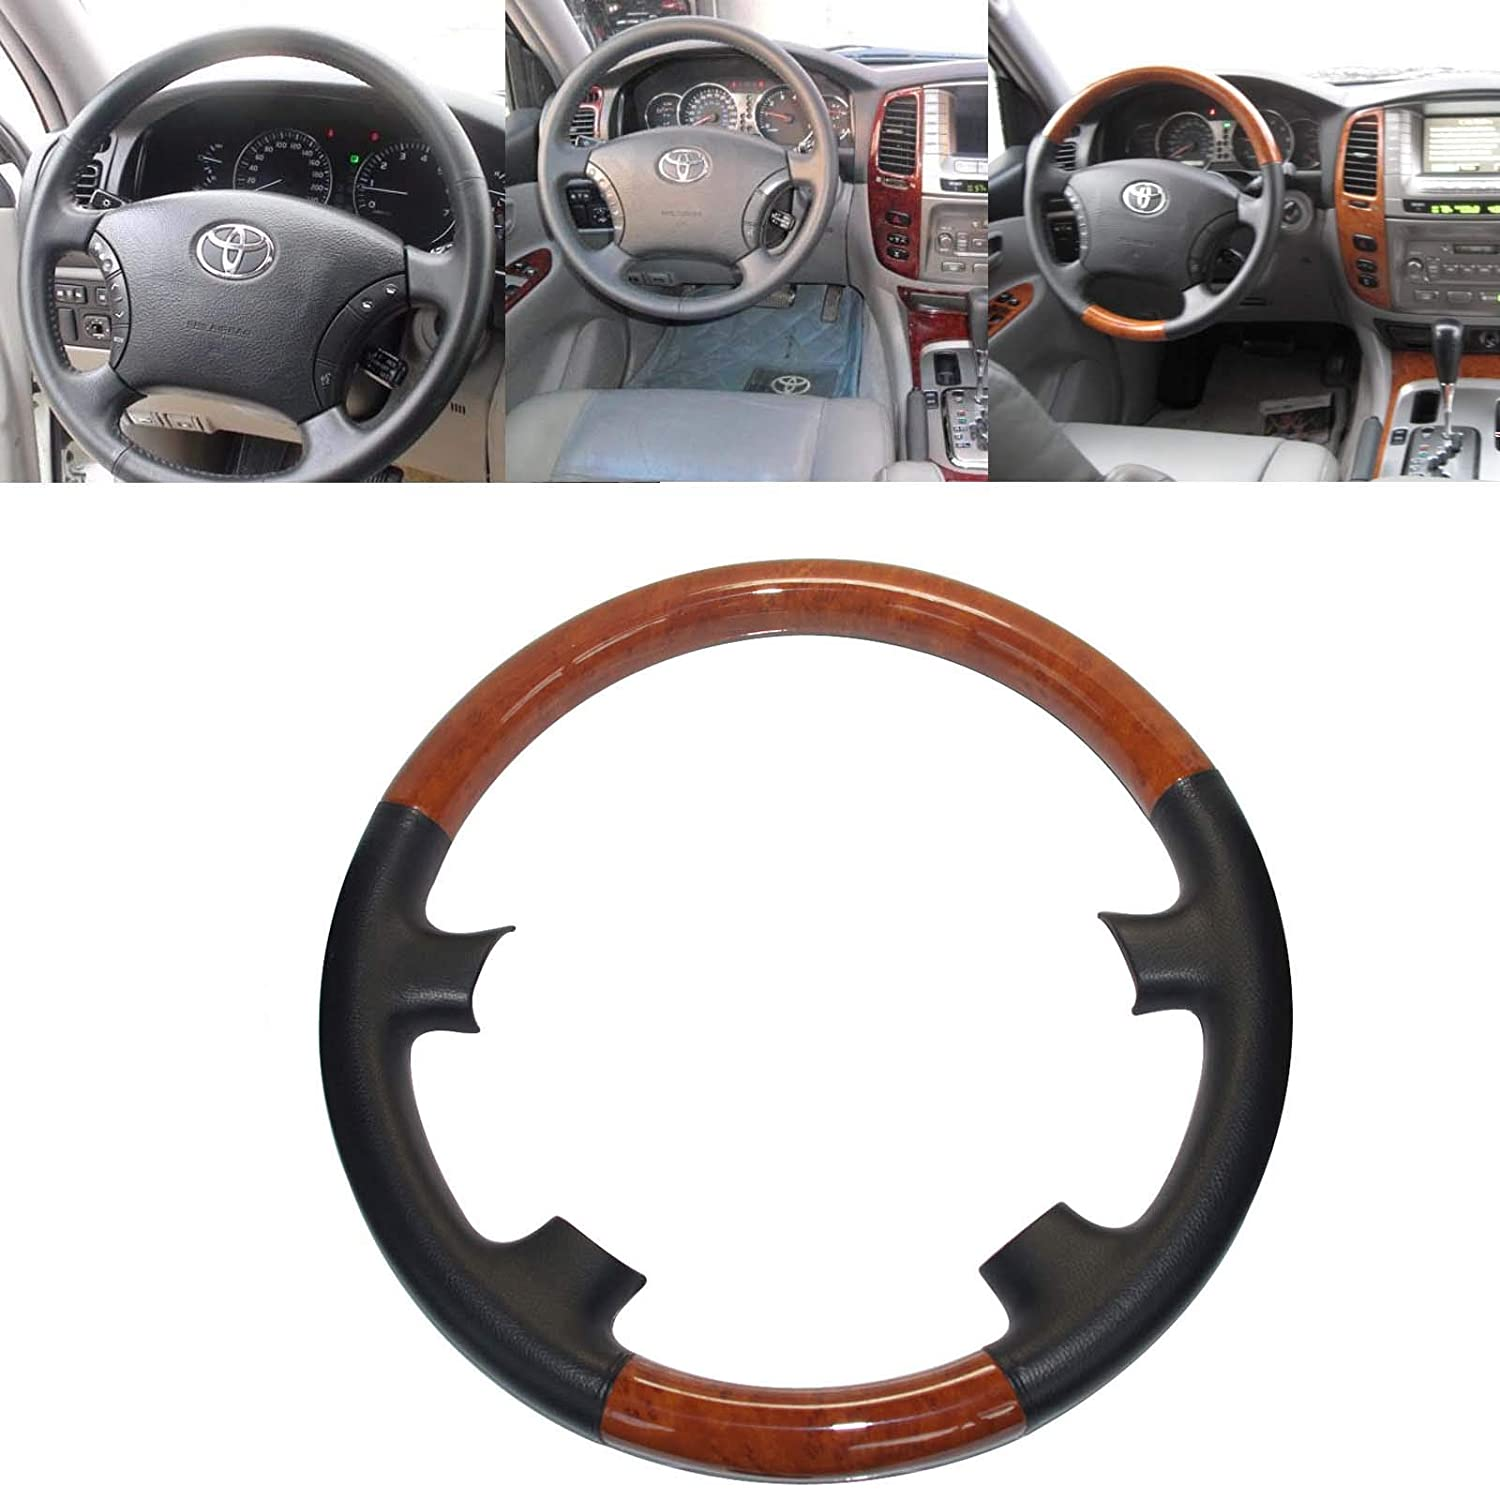 Amazon.com: Pursuestar Black Leather Brown Wood Steering Wheel Cover Decor  Protector Work with 2003 to 2007 Land Cruiser LX470 GX470 4700 Prado  4Runner ...